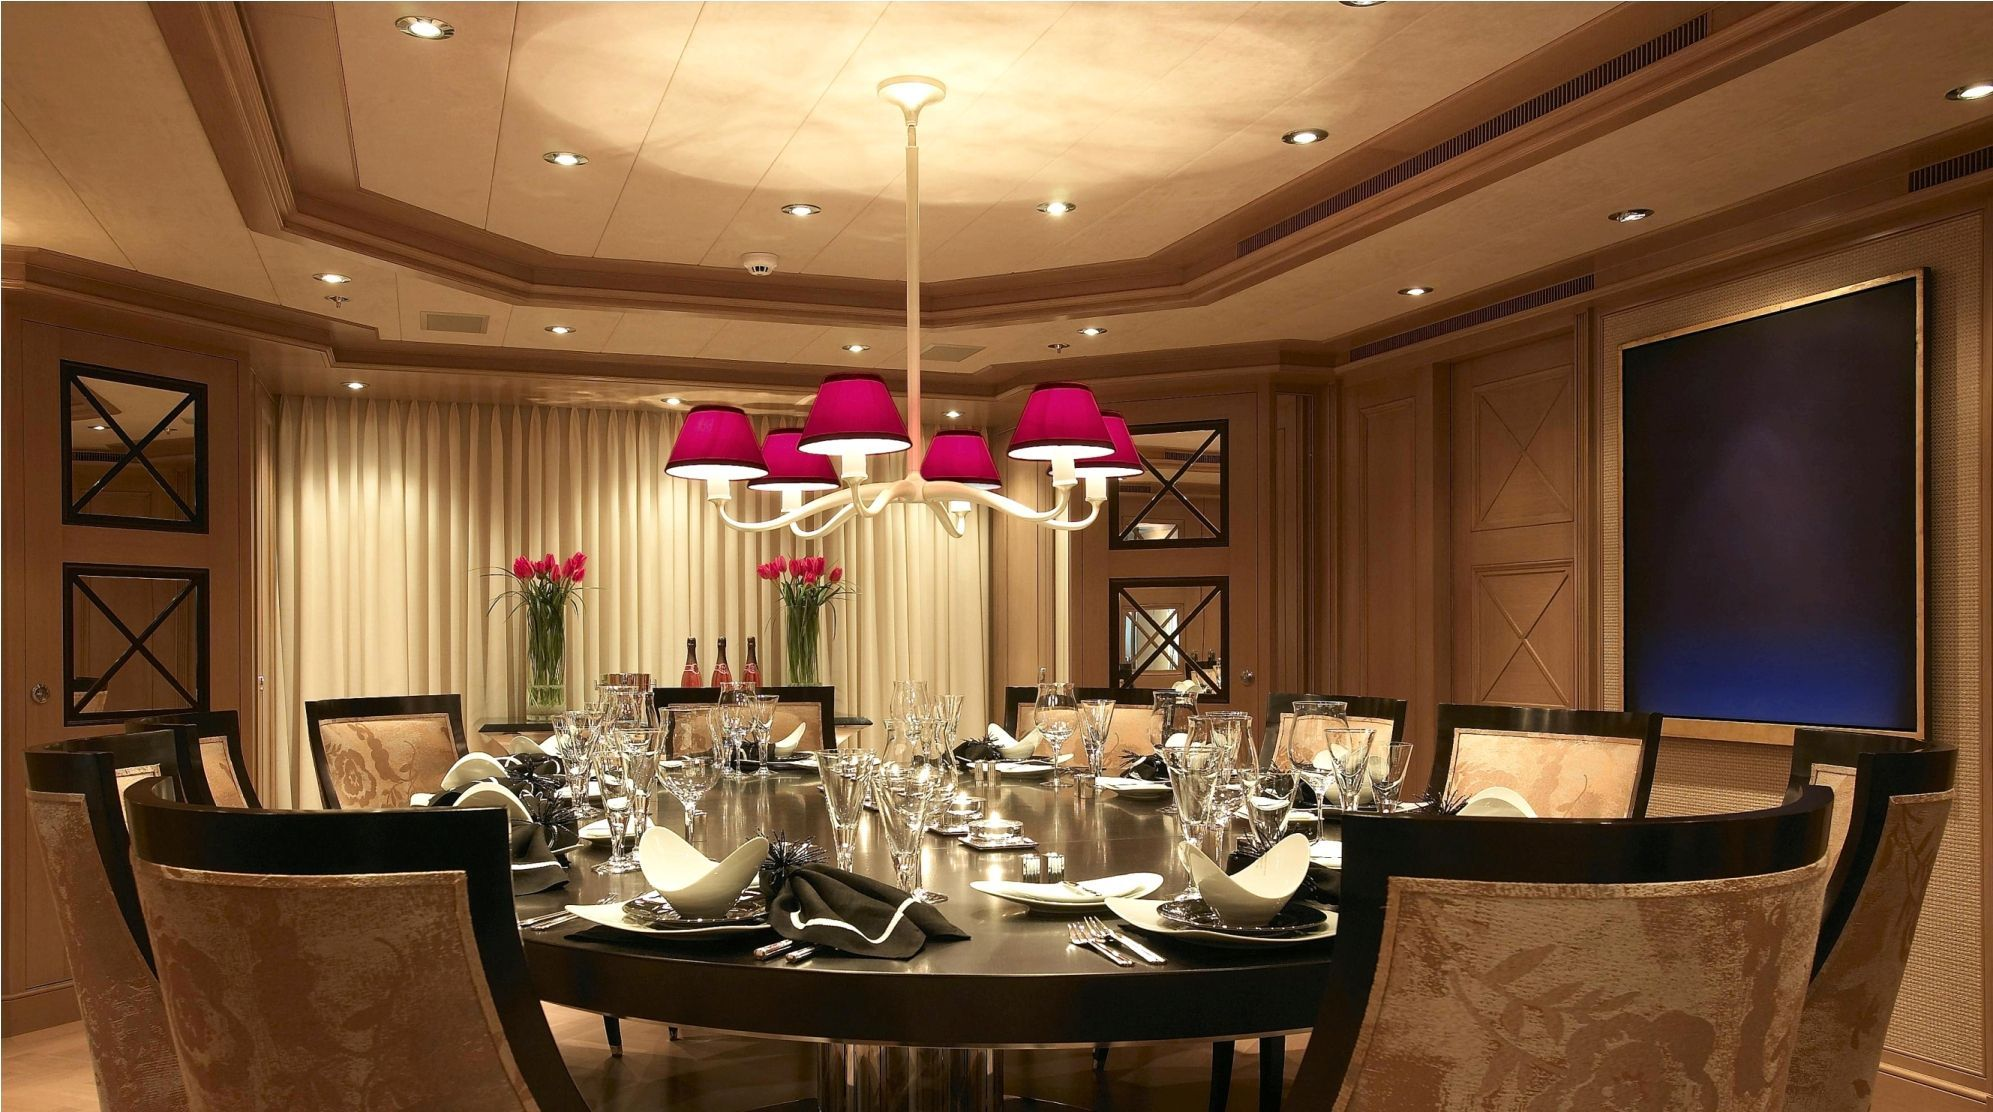 Luxury Dining Room Sets With Stunning False Ceiling Lights   Pictures,  Photos, Images